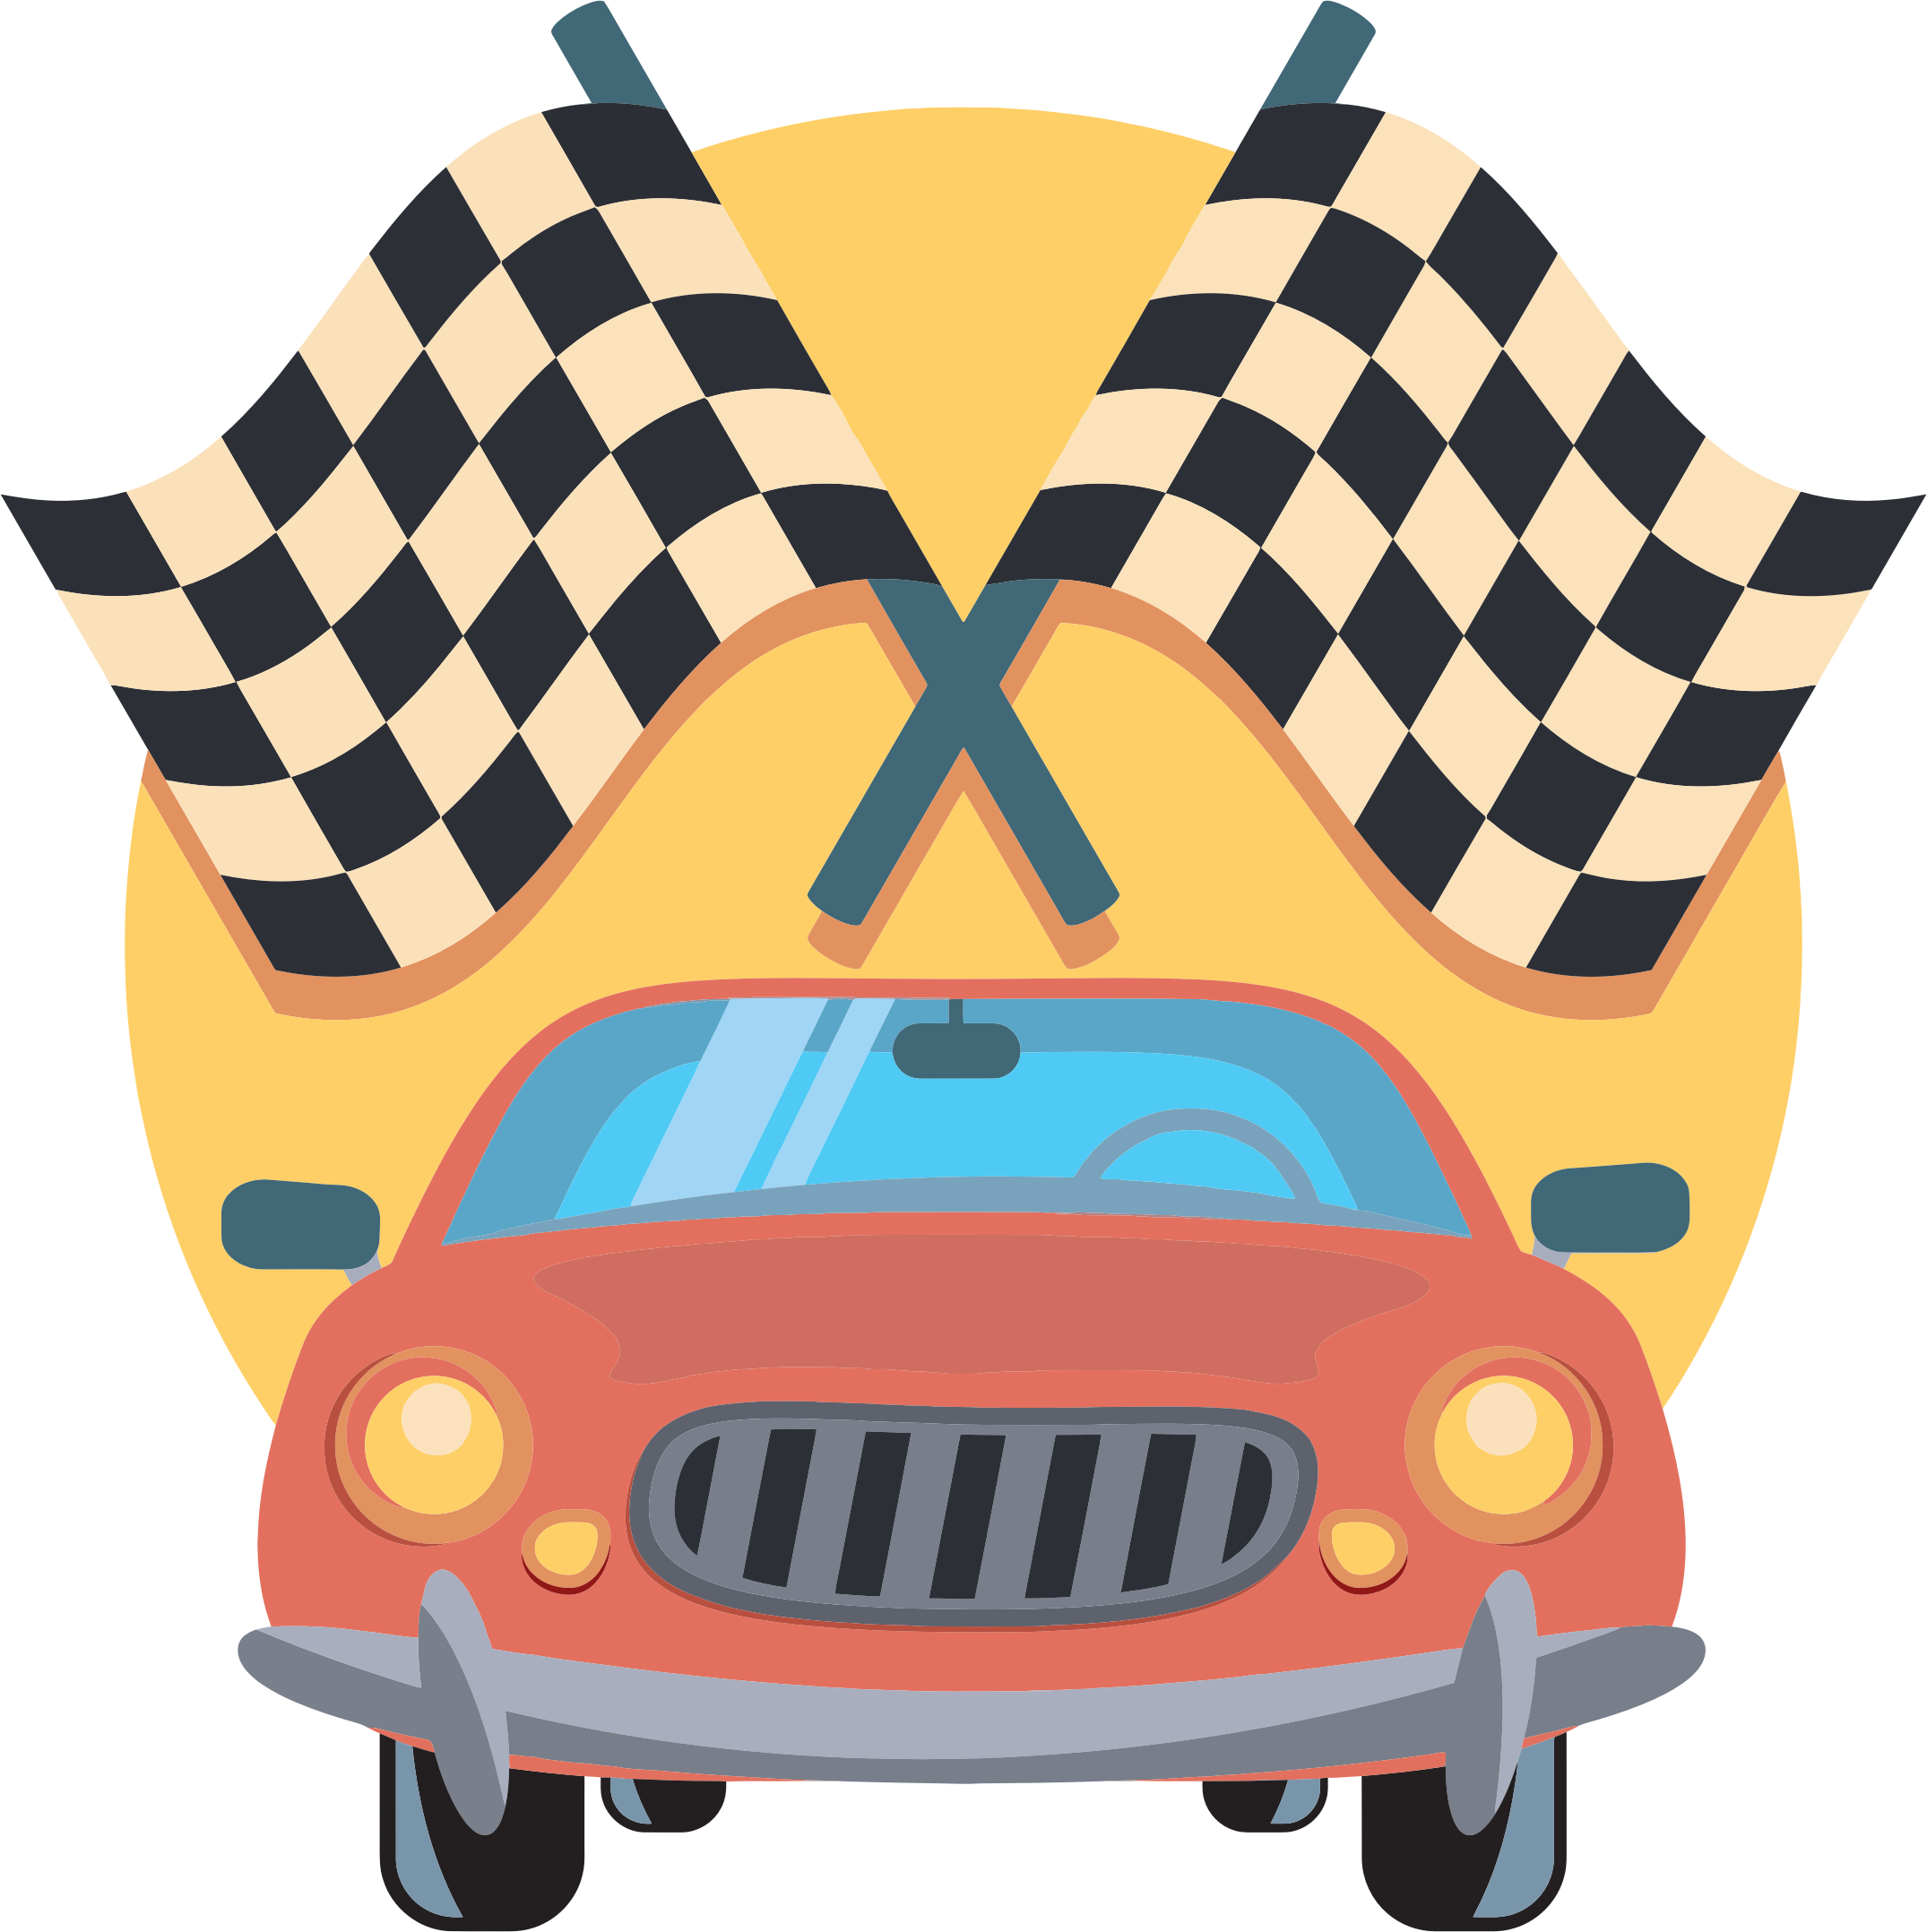 Car And Racing Flags Icon by GDJ